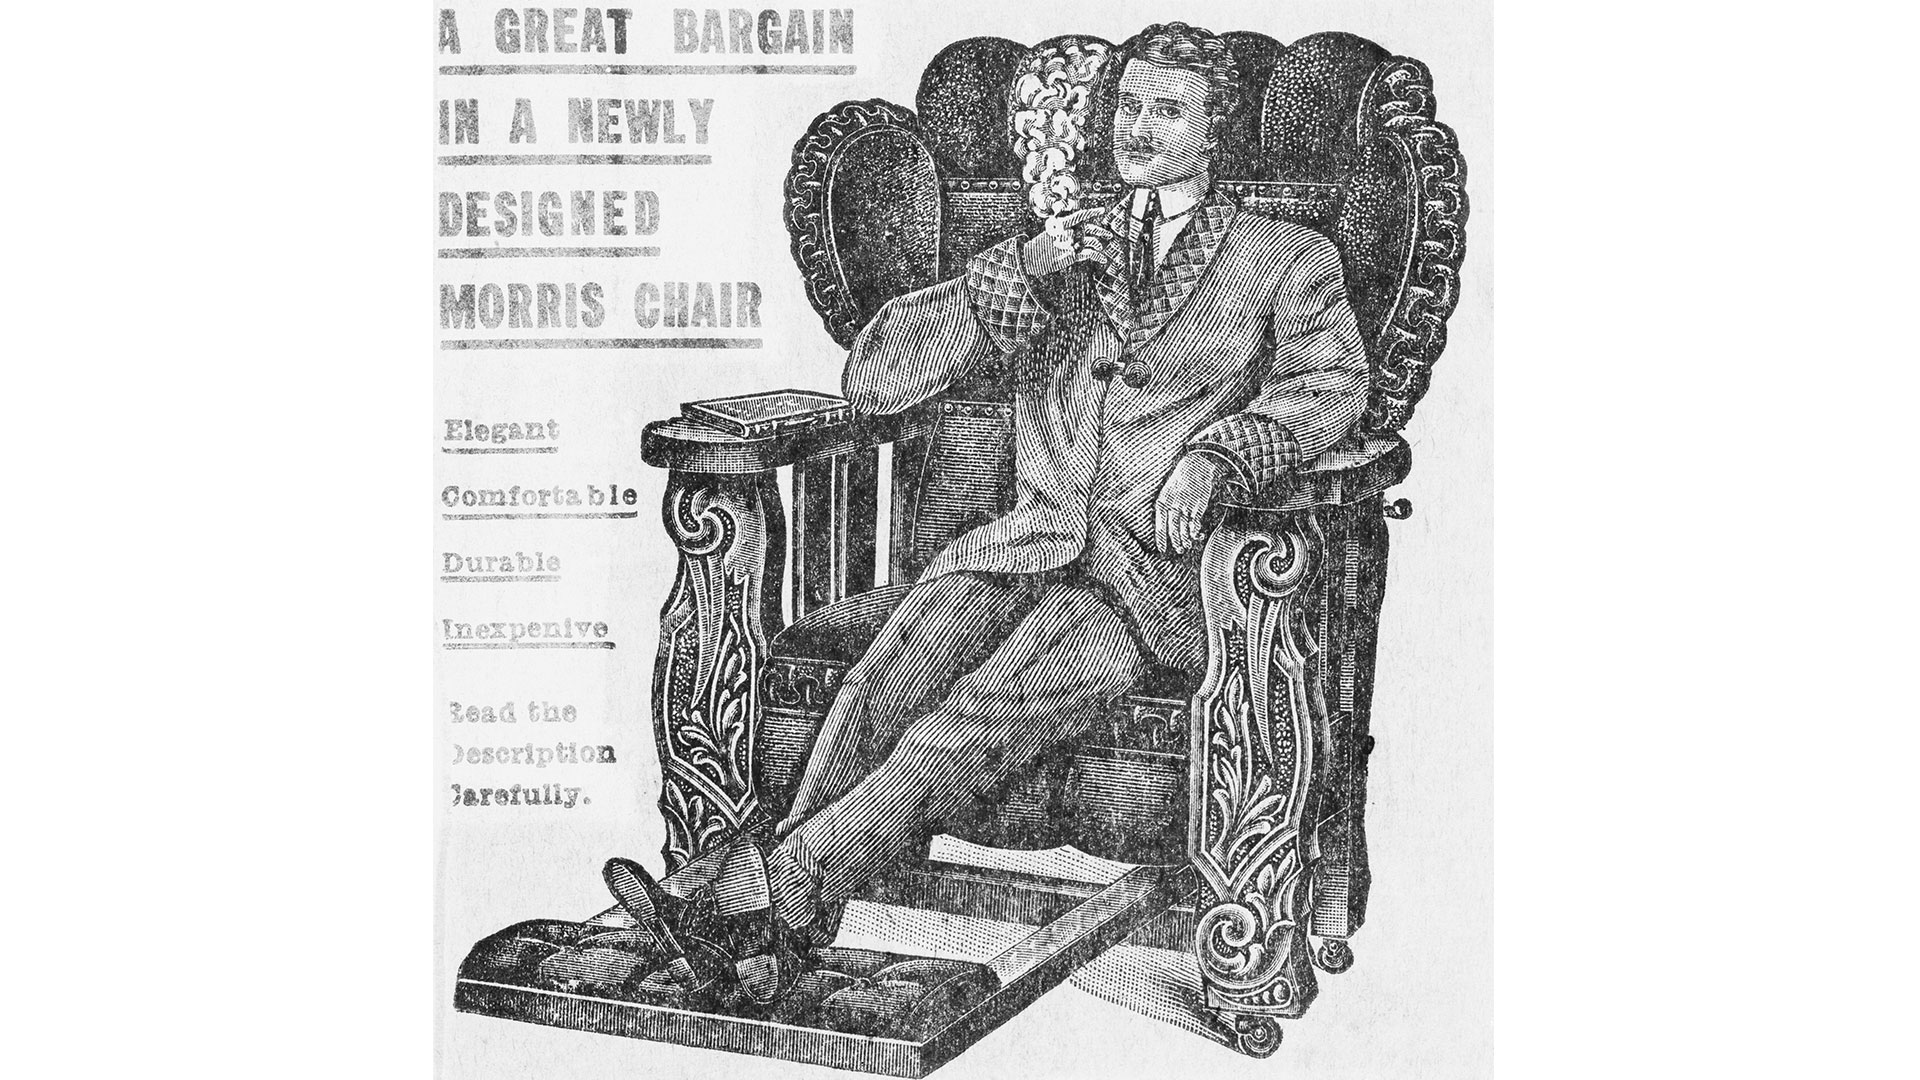 Morris Chair Ad